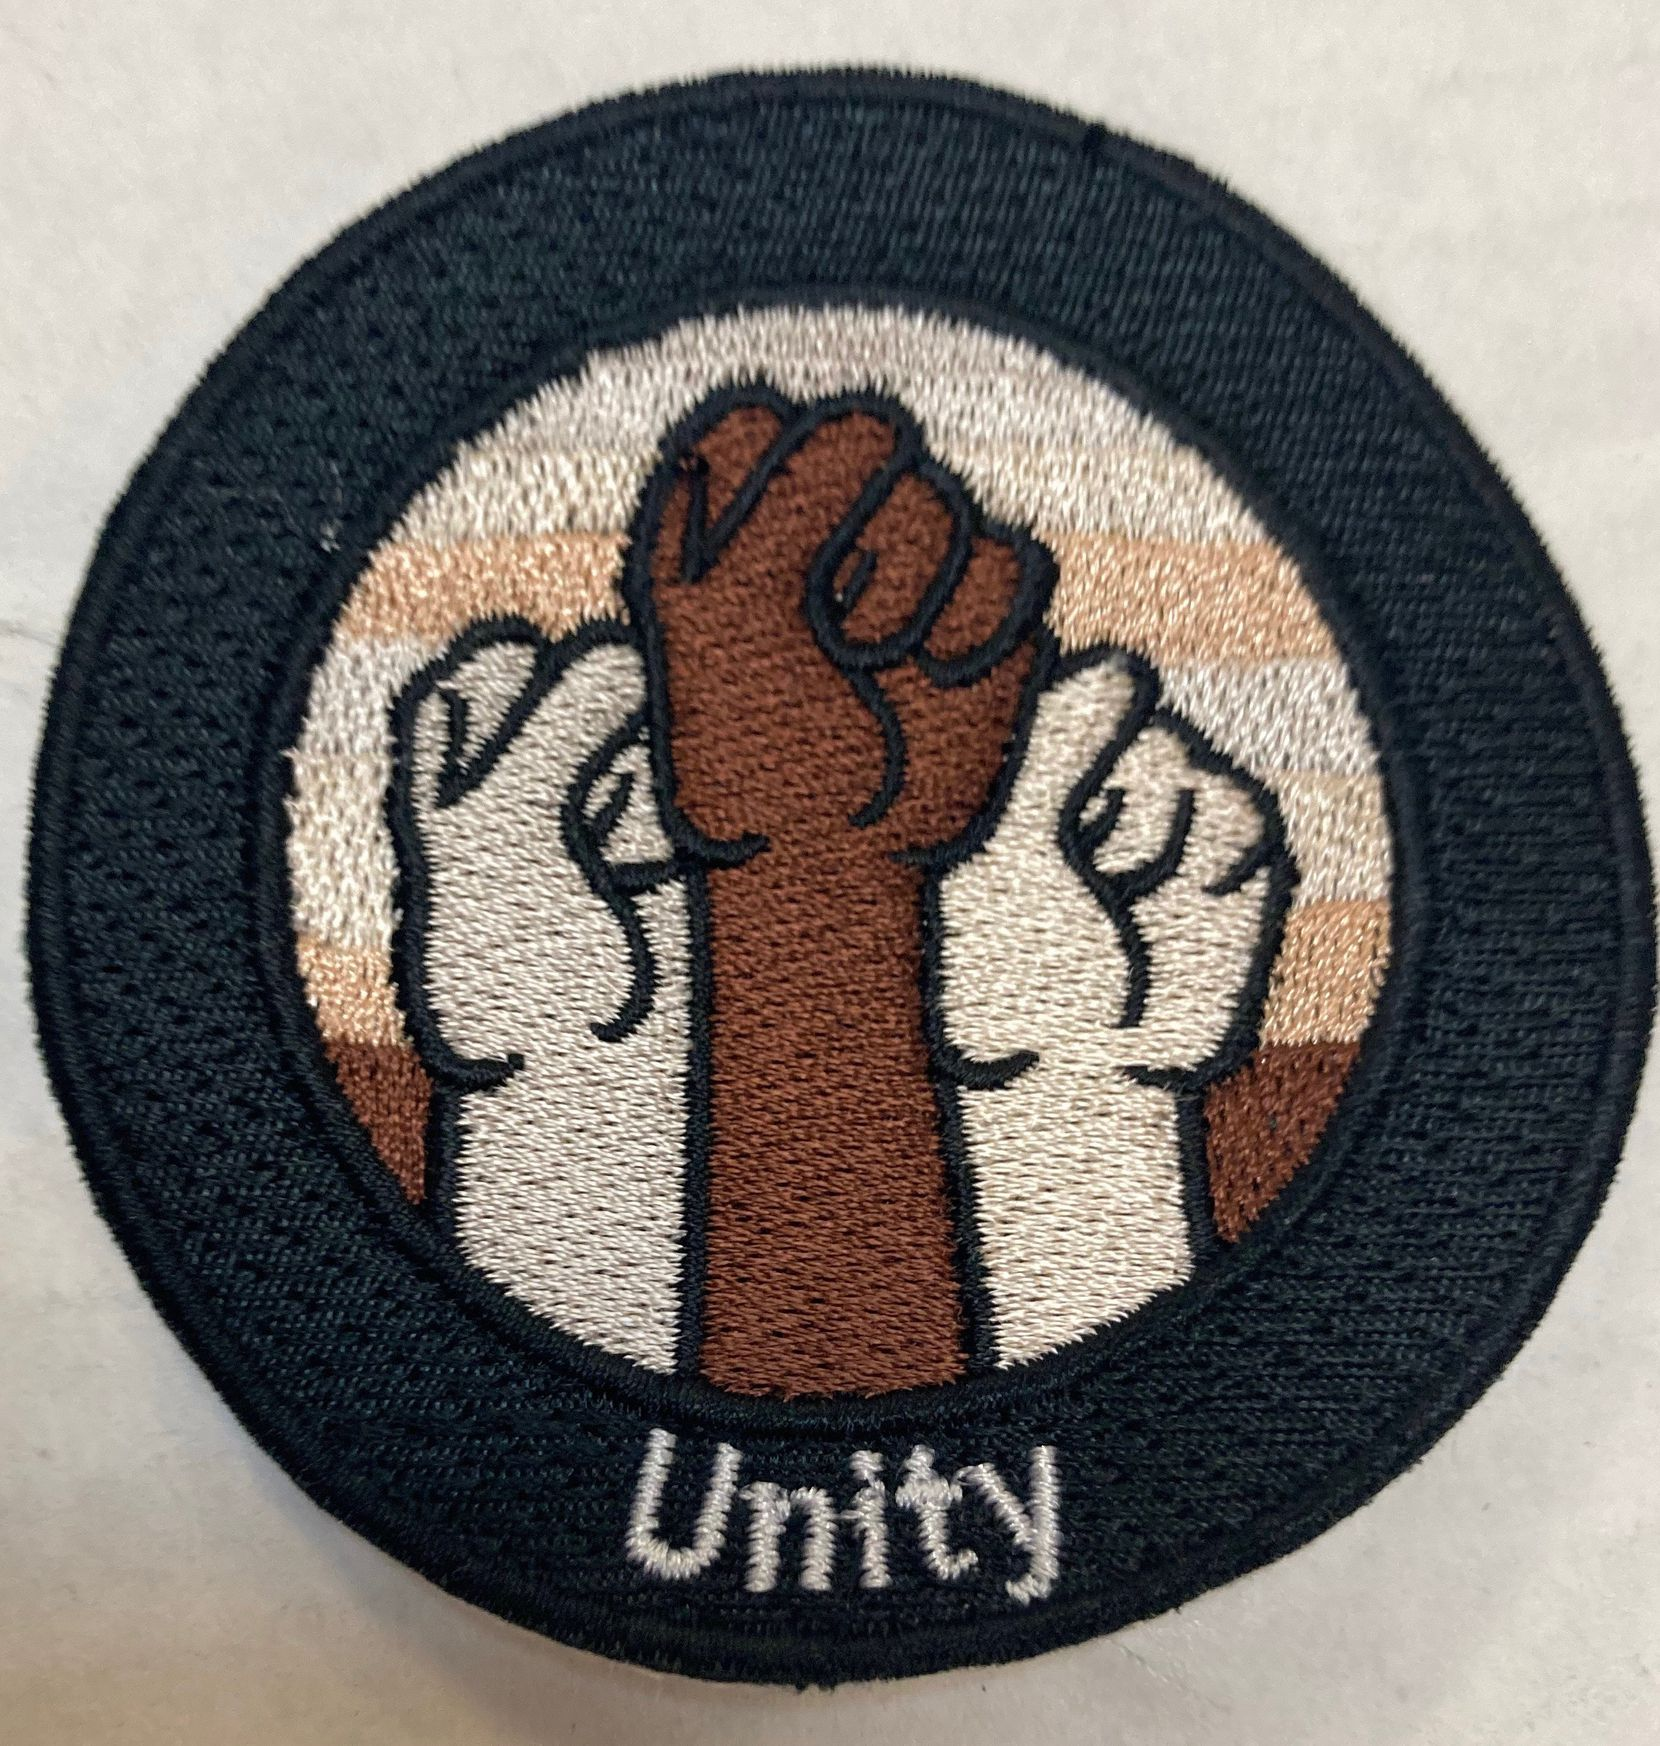 This is the new patch that SMU athletes are wearing. This patch is currently only being worn by the men's basketball program.